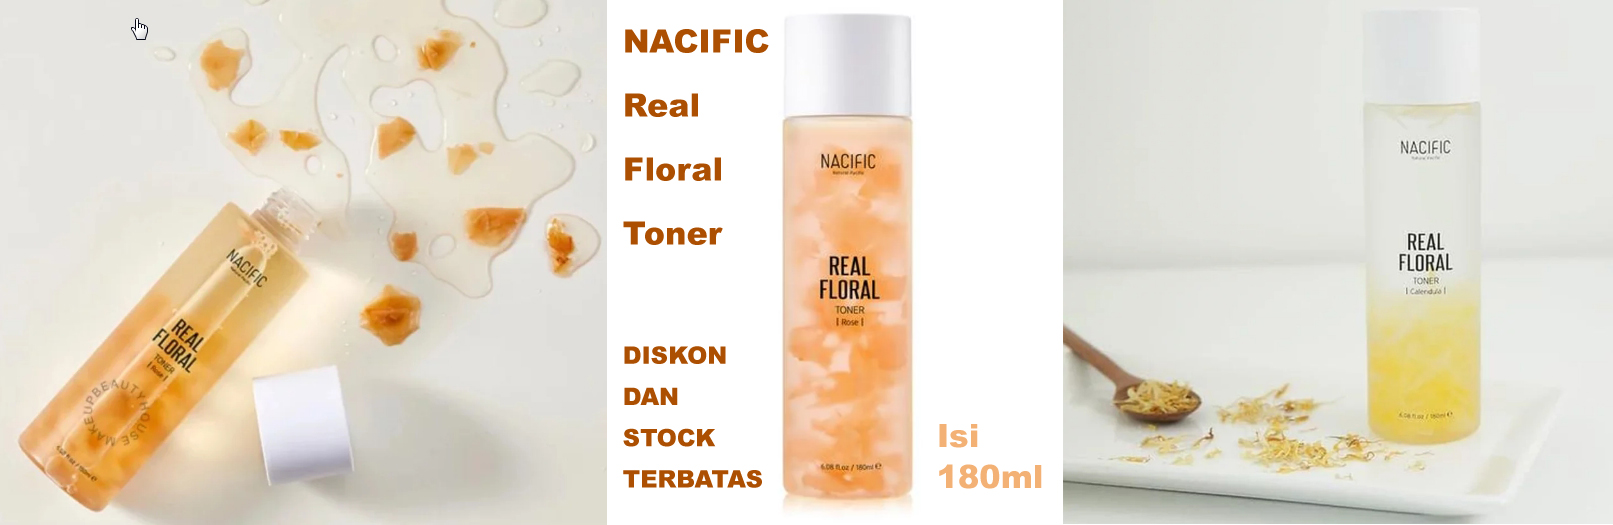 NACIFIC Real Floral Toner 180ml